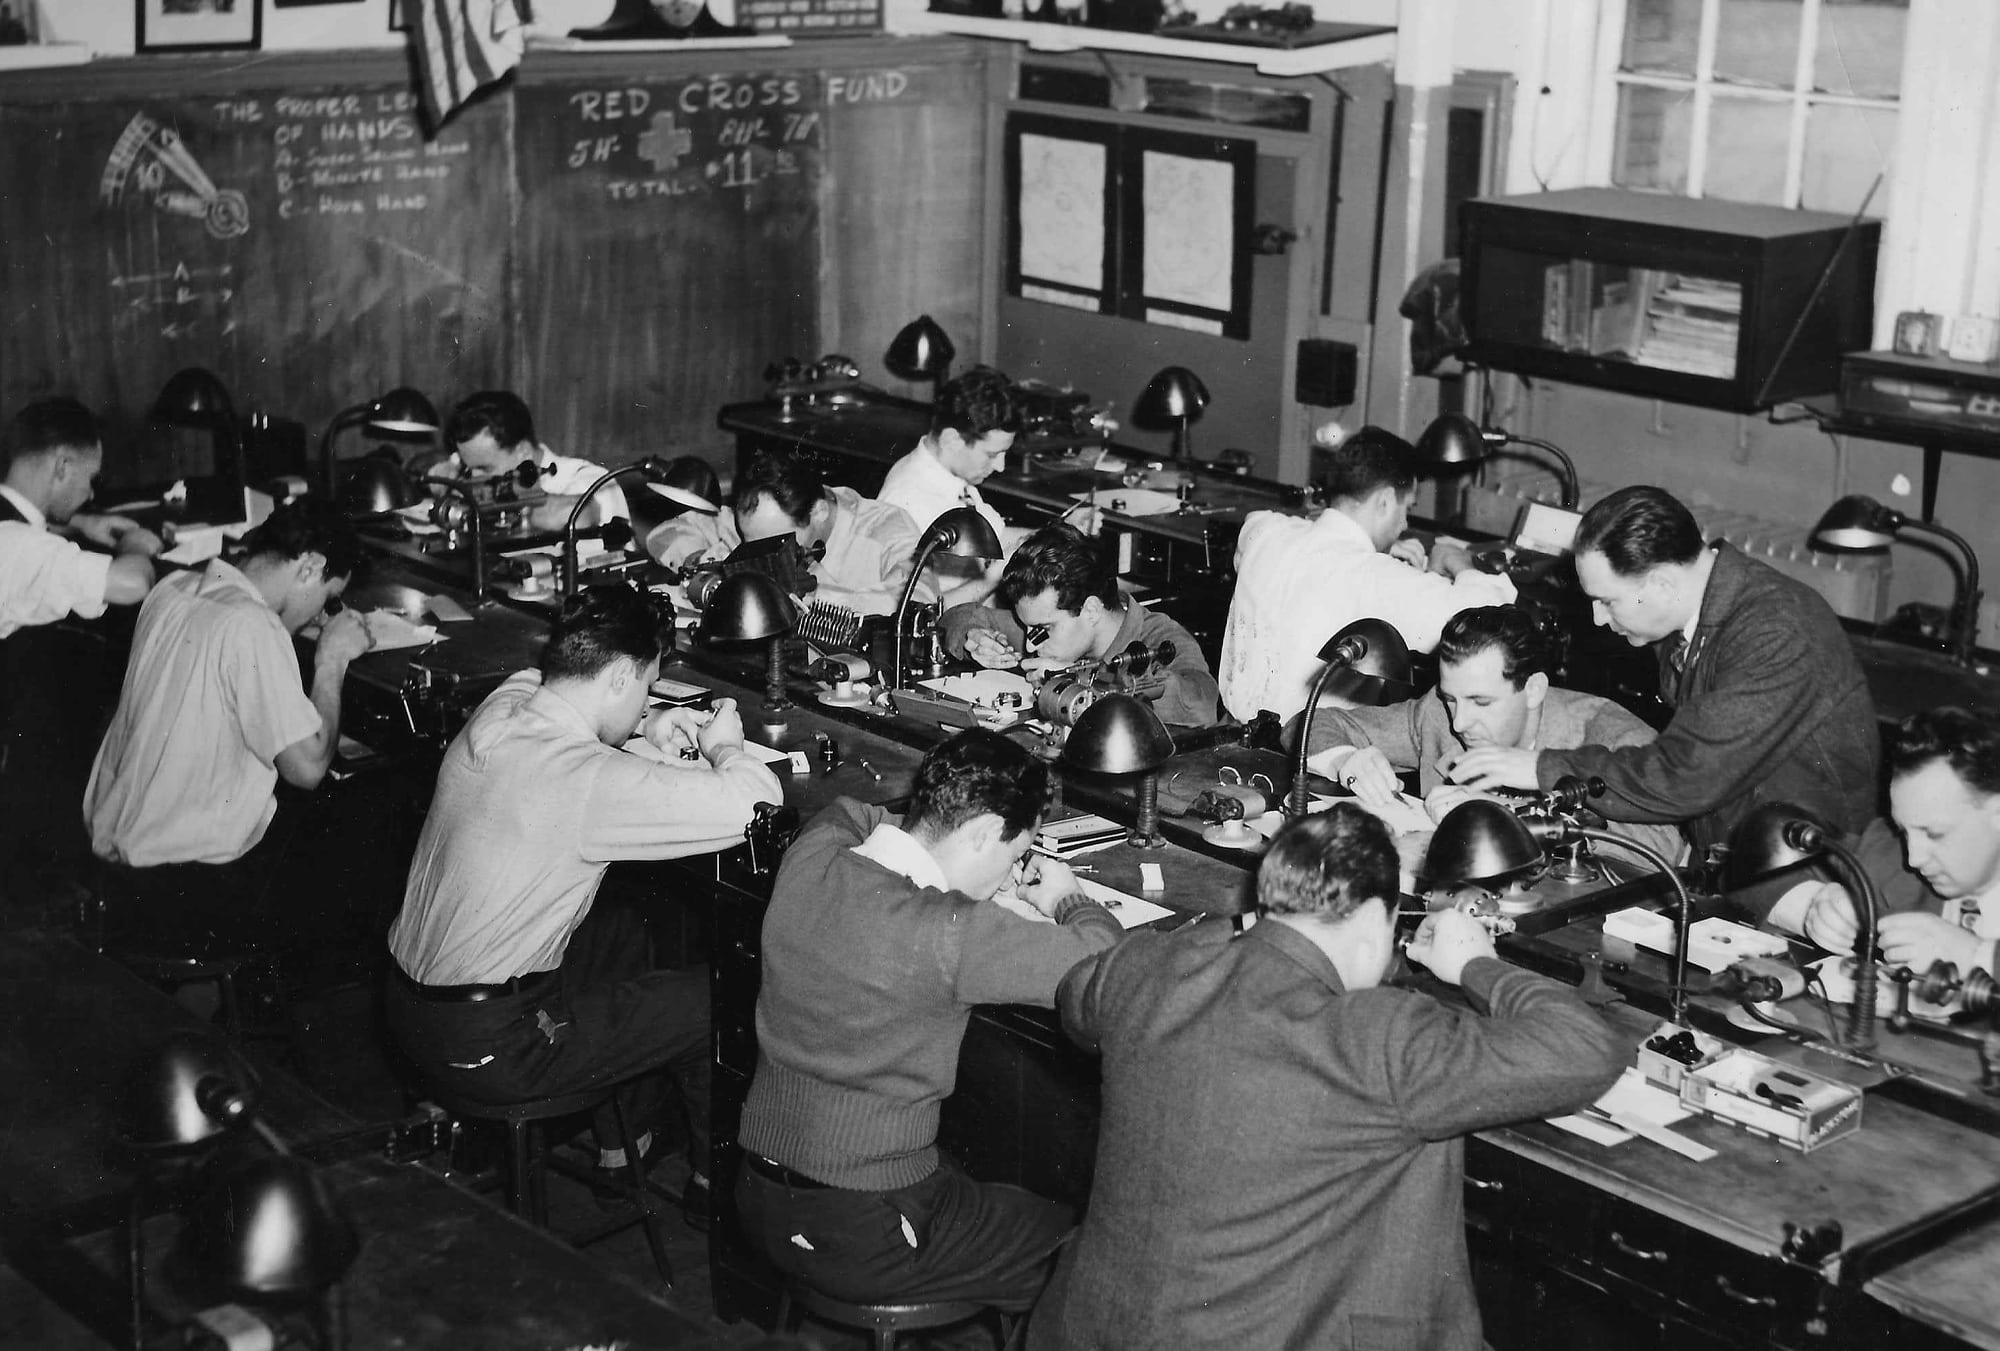 Henry B. Fried instructing a watchmaking class.